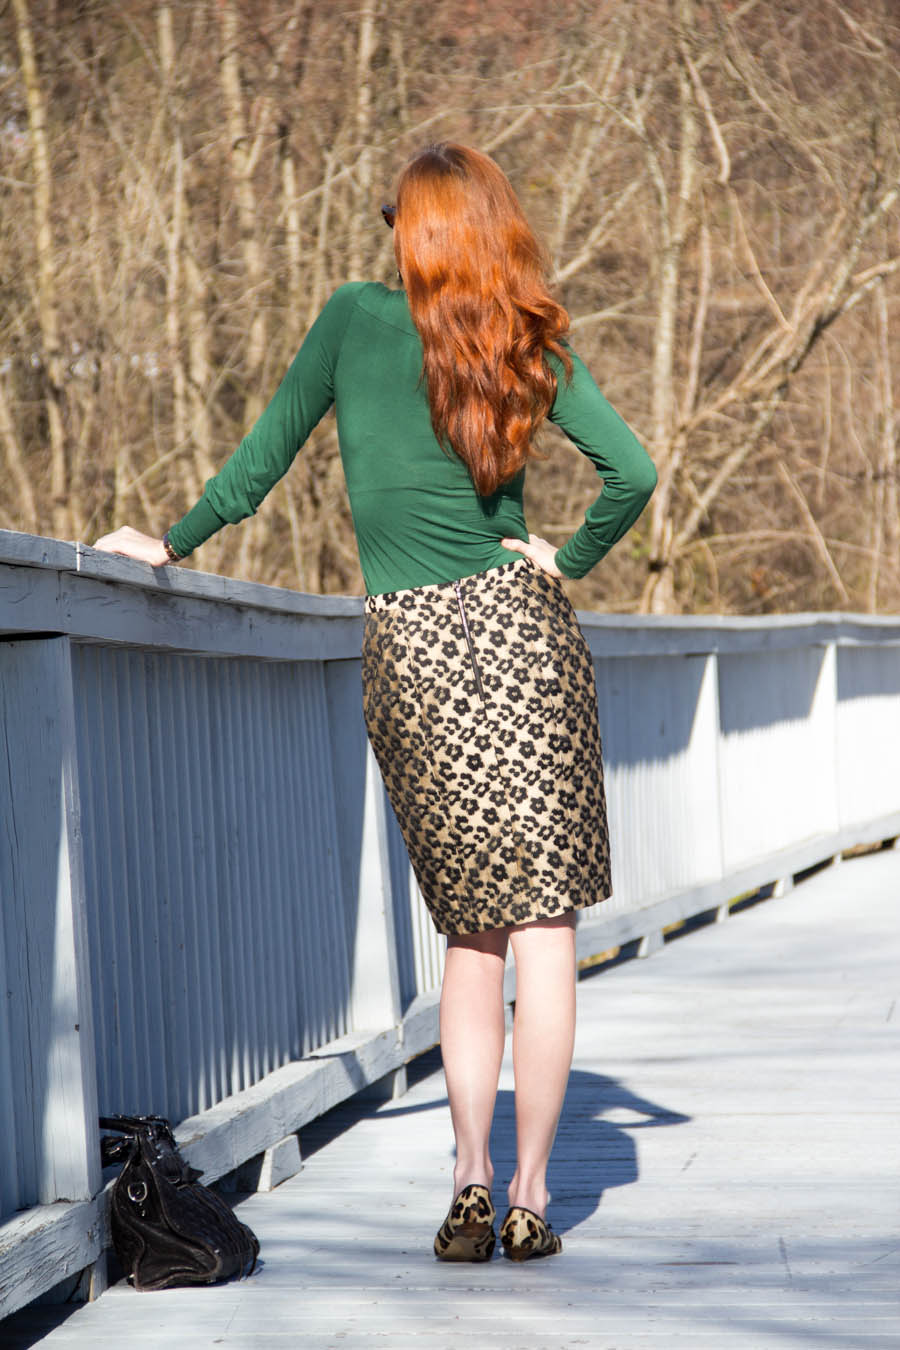 Luck of the Irish and Turning Heads Tuesday Link Up ...